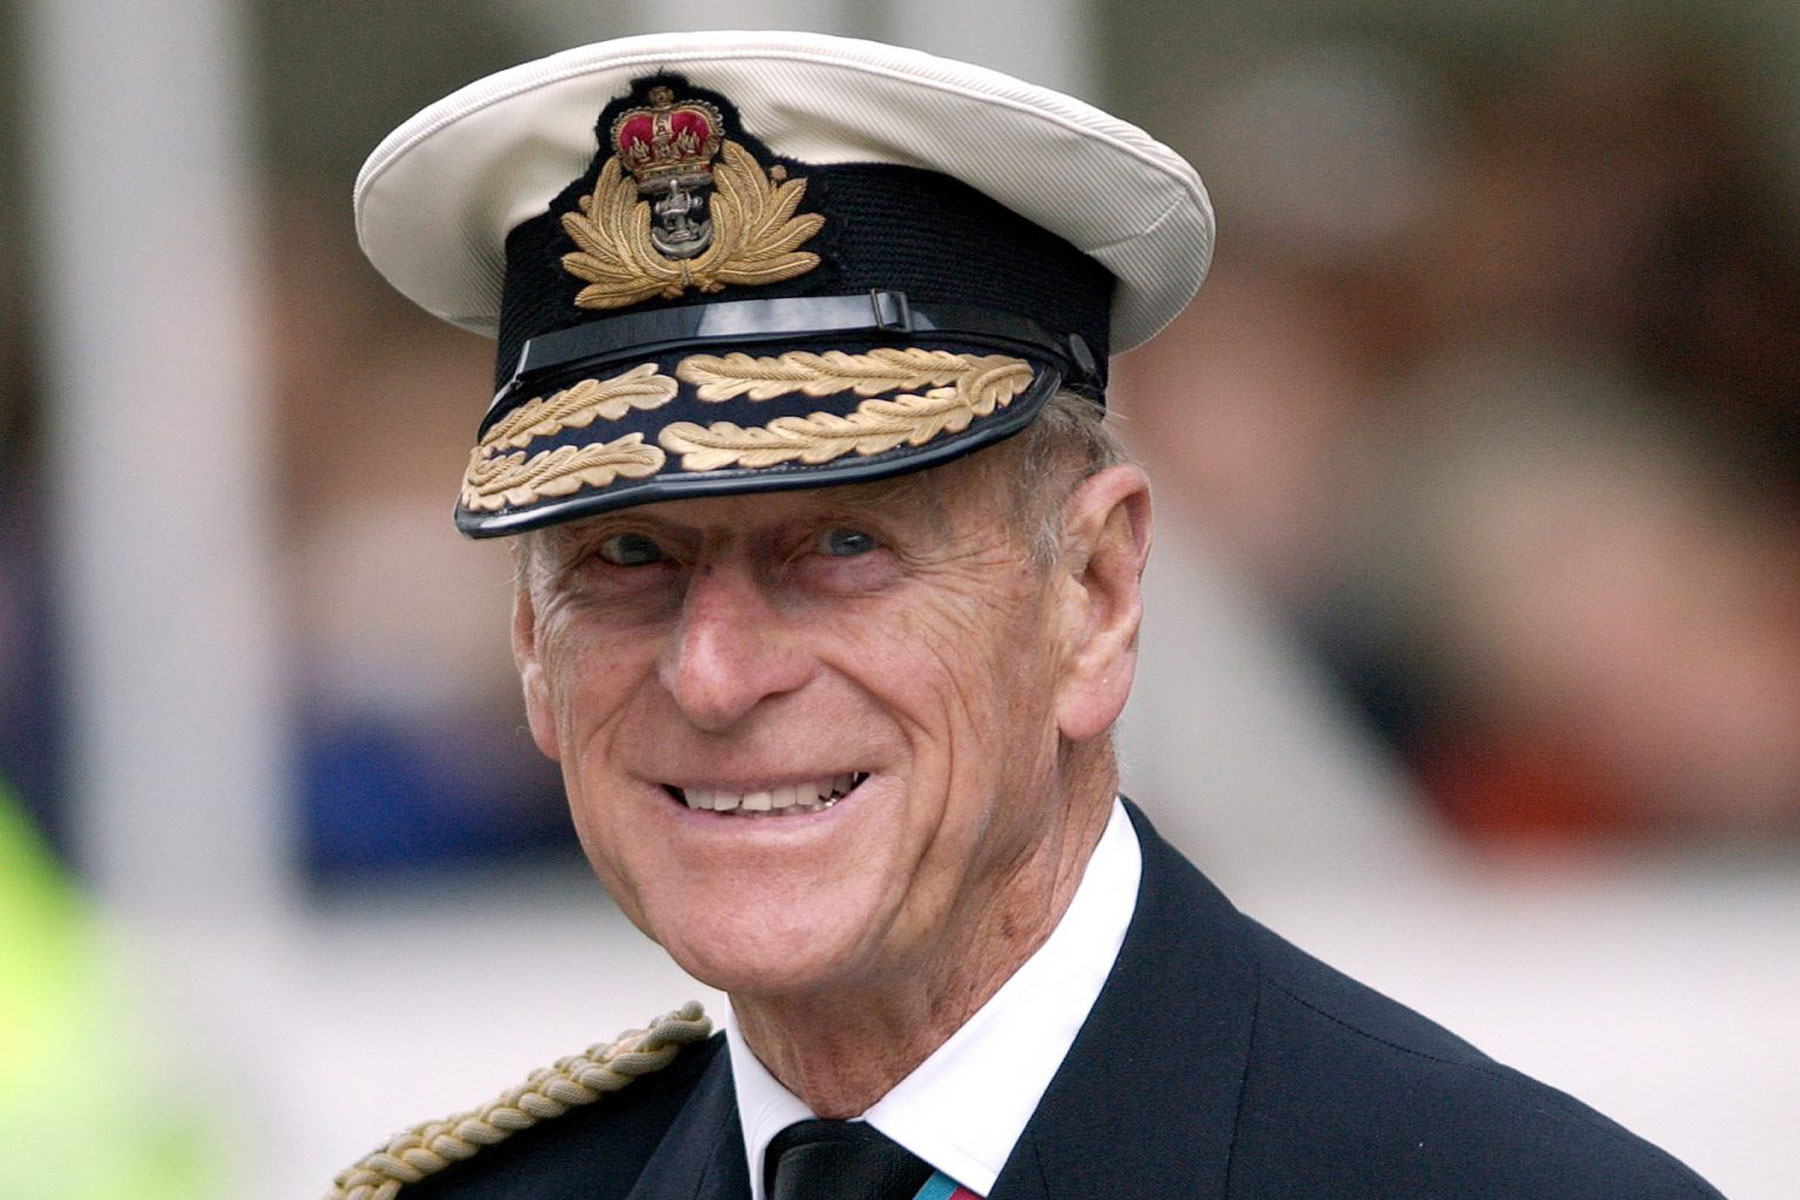 Prince Philip In Military Uniform As Admiral Of The Fleet In The Royal Navy For A Service Of Remembrance For The Iraq War